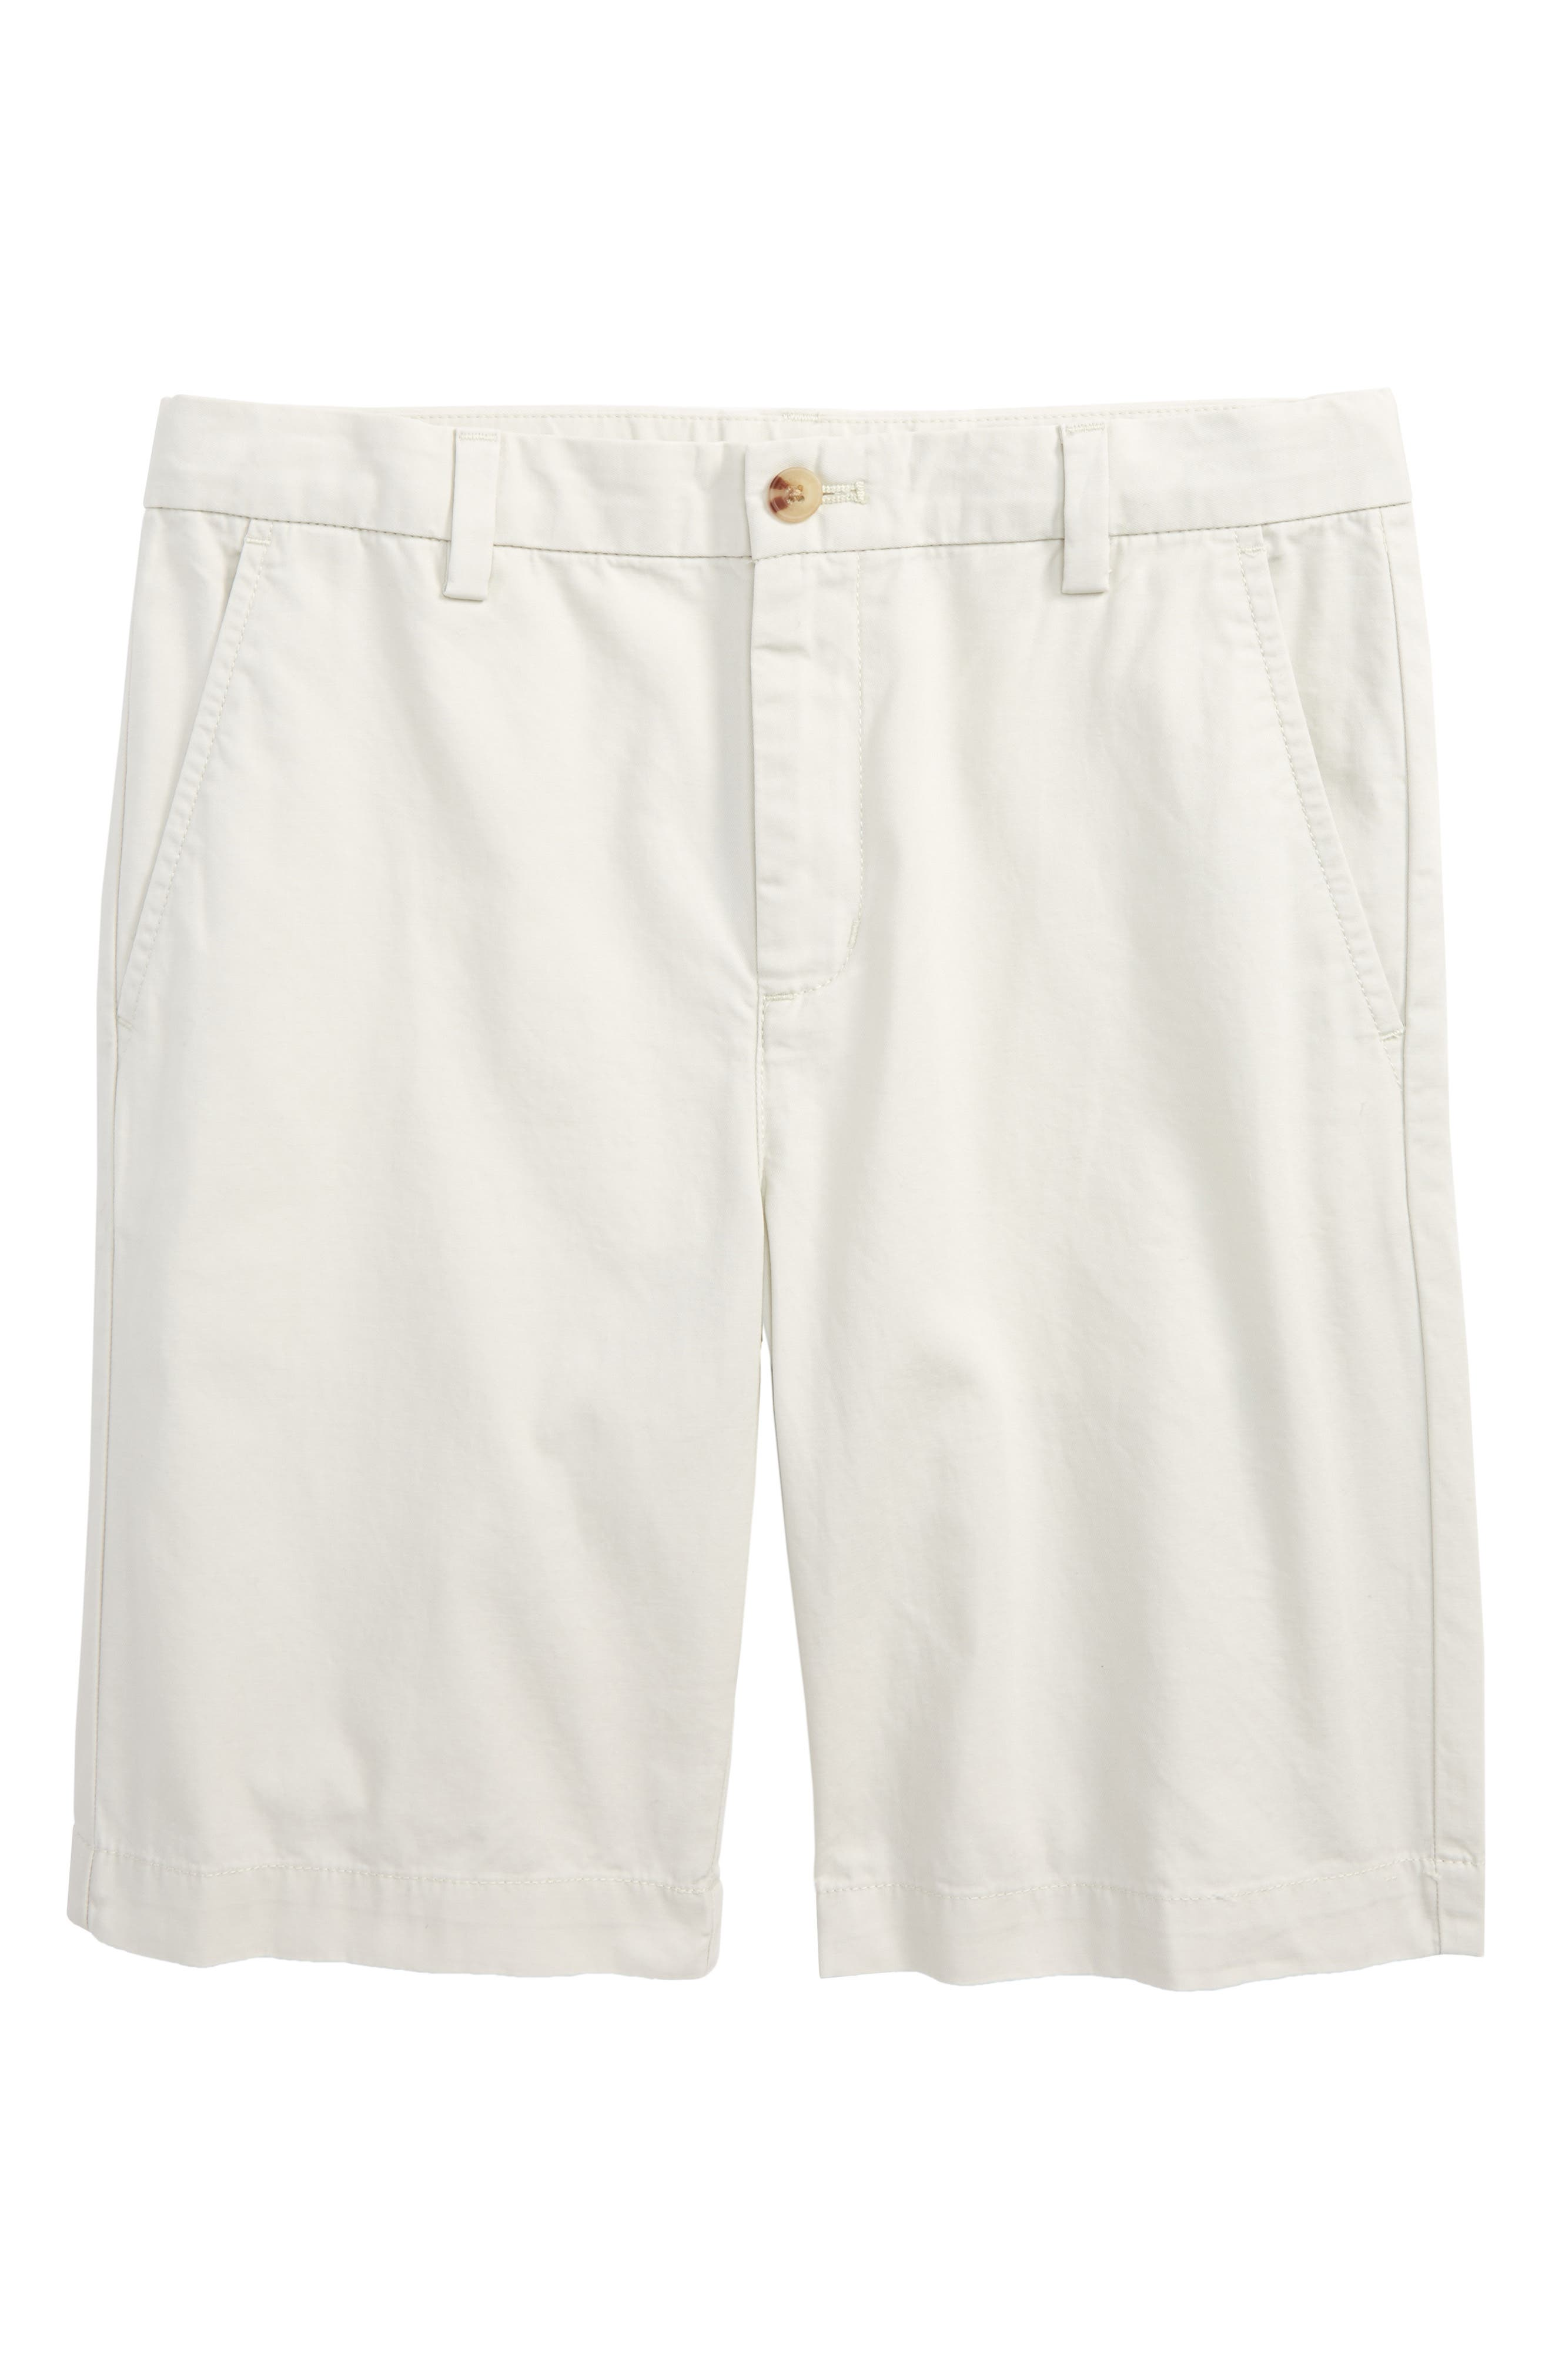 Summer - Breaker Twill Shorts,                         Main,                         color,